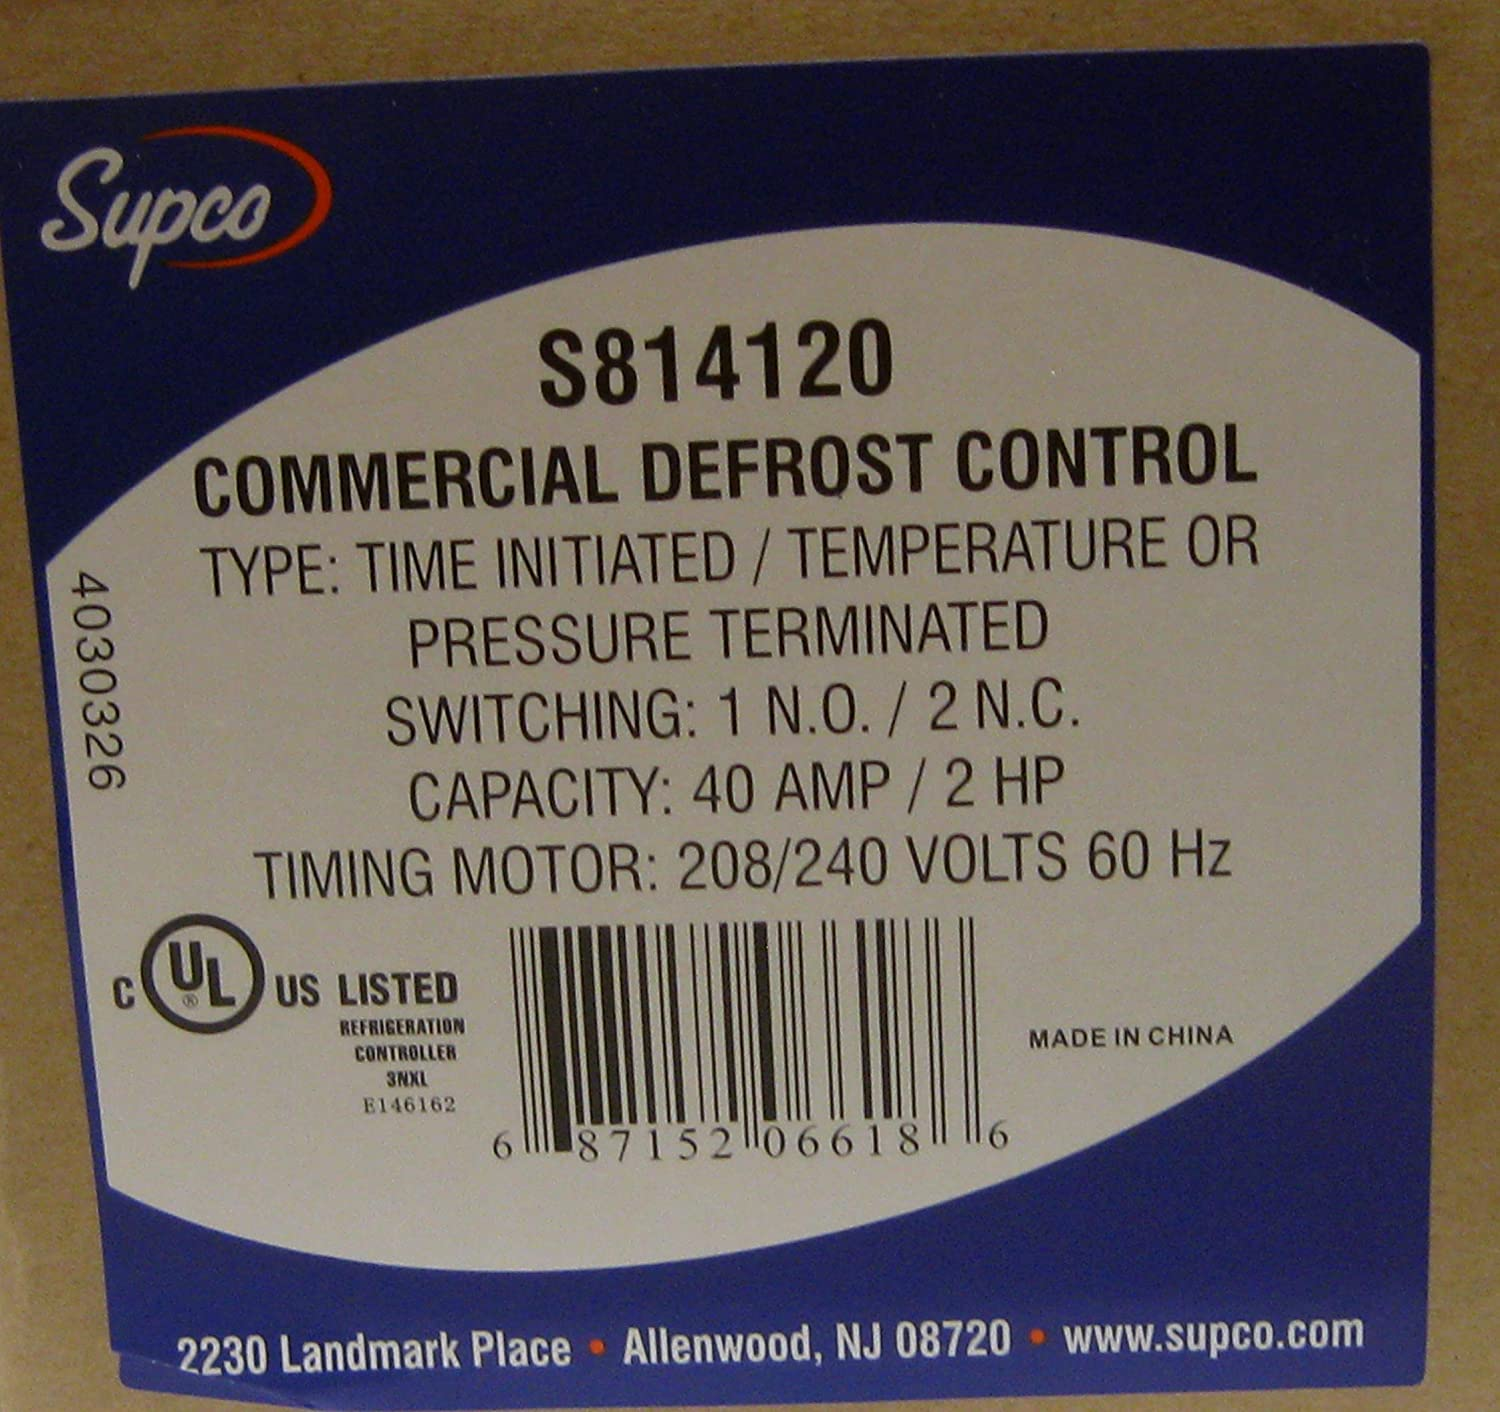 paragon timer 8141 00 related keywords suggestions paragon defrost timer replaces paragon on 8141 00 wiring